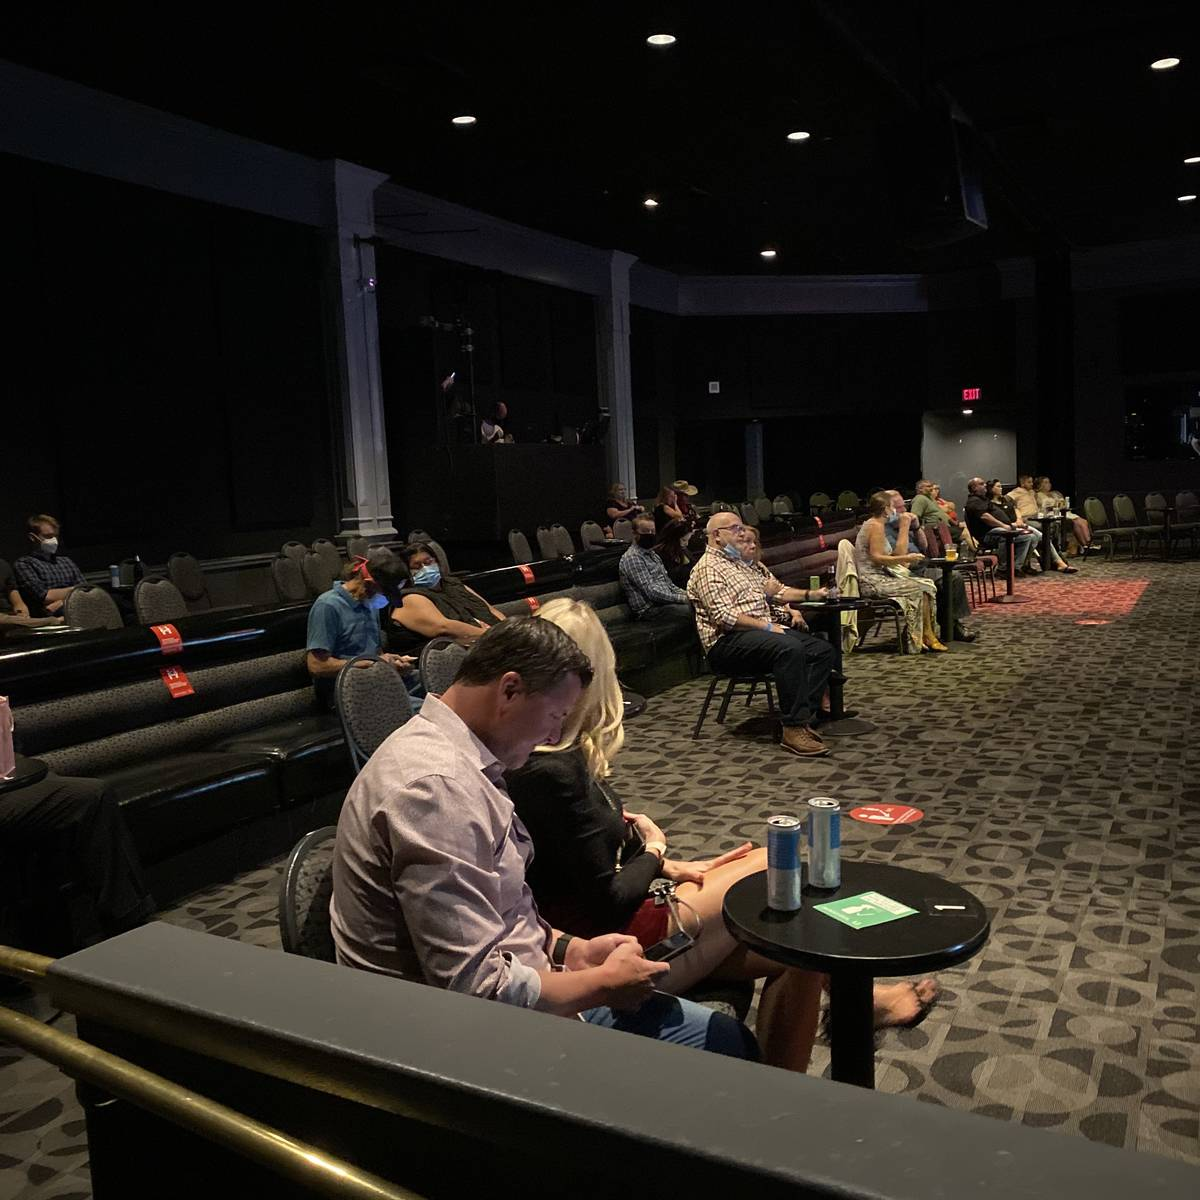 """An early look at the crowd at """"X Country"""" at Harrah's Cabaret on Thursday, Oct. 22, 2020. (John ..."""